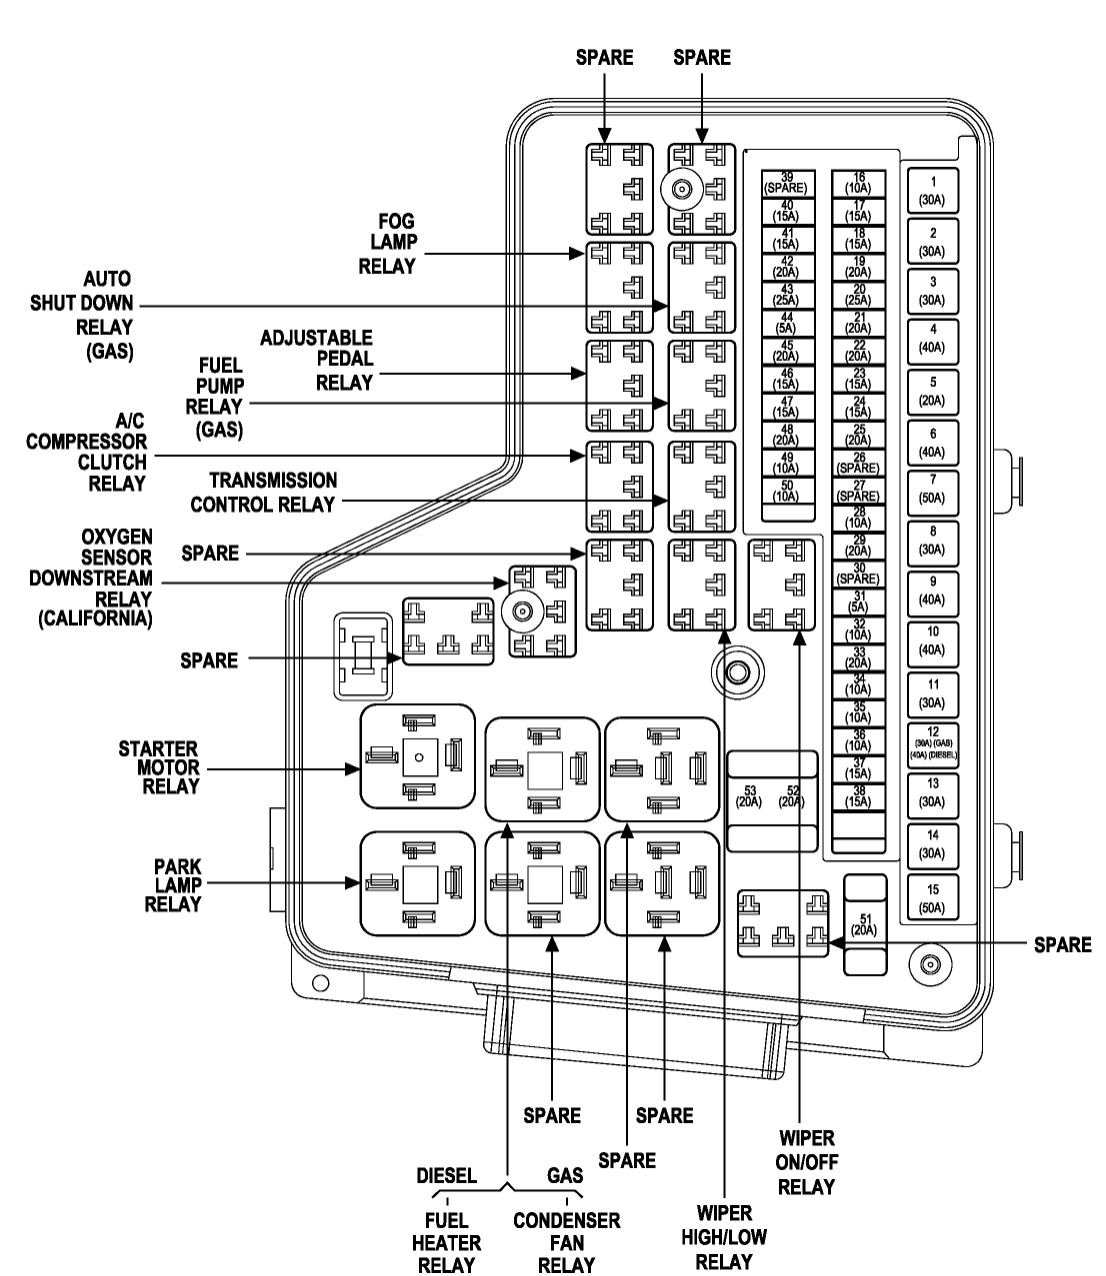 Diagram 1996 Dodge Ram Fuse Diagram Full Version Hd Quality Fuse Diagram Martin Erd Diagram Lrpol Fr